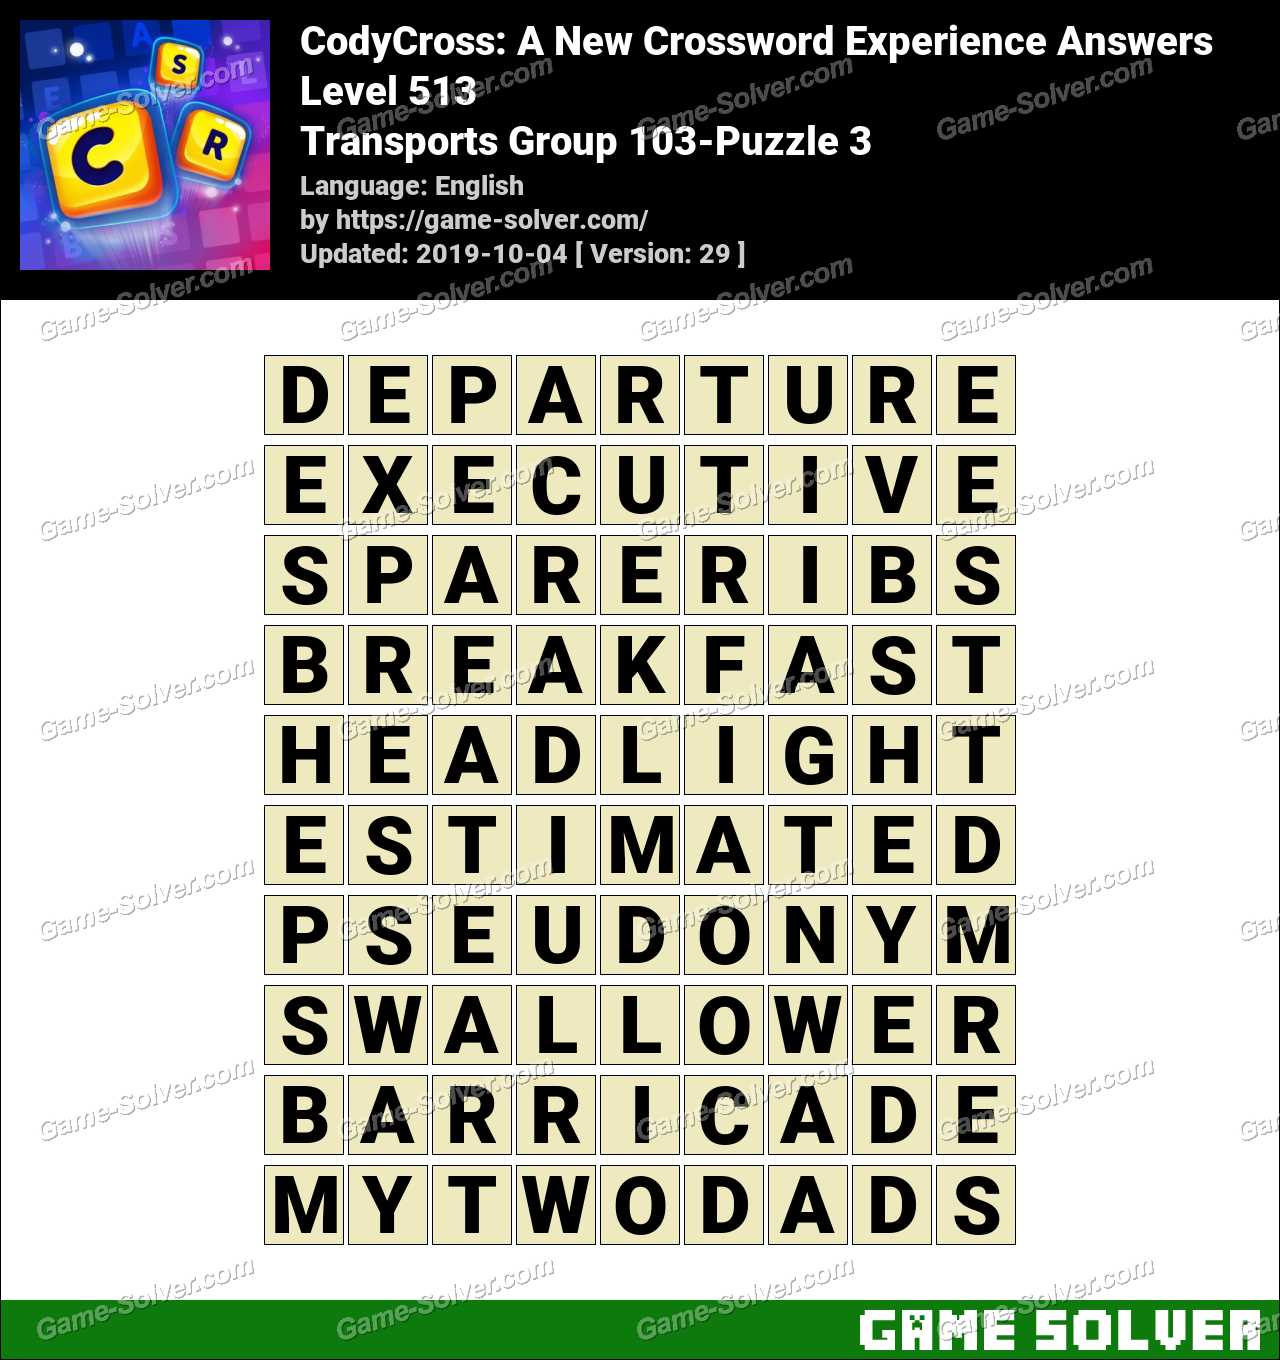 CodyCross Transports Group 103-Puzzle 3 Answers